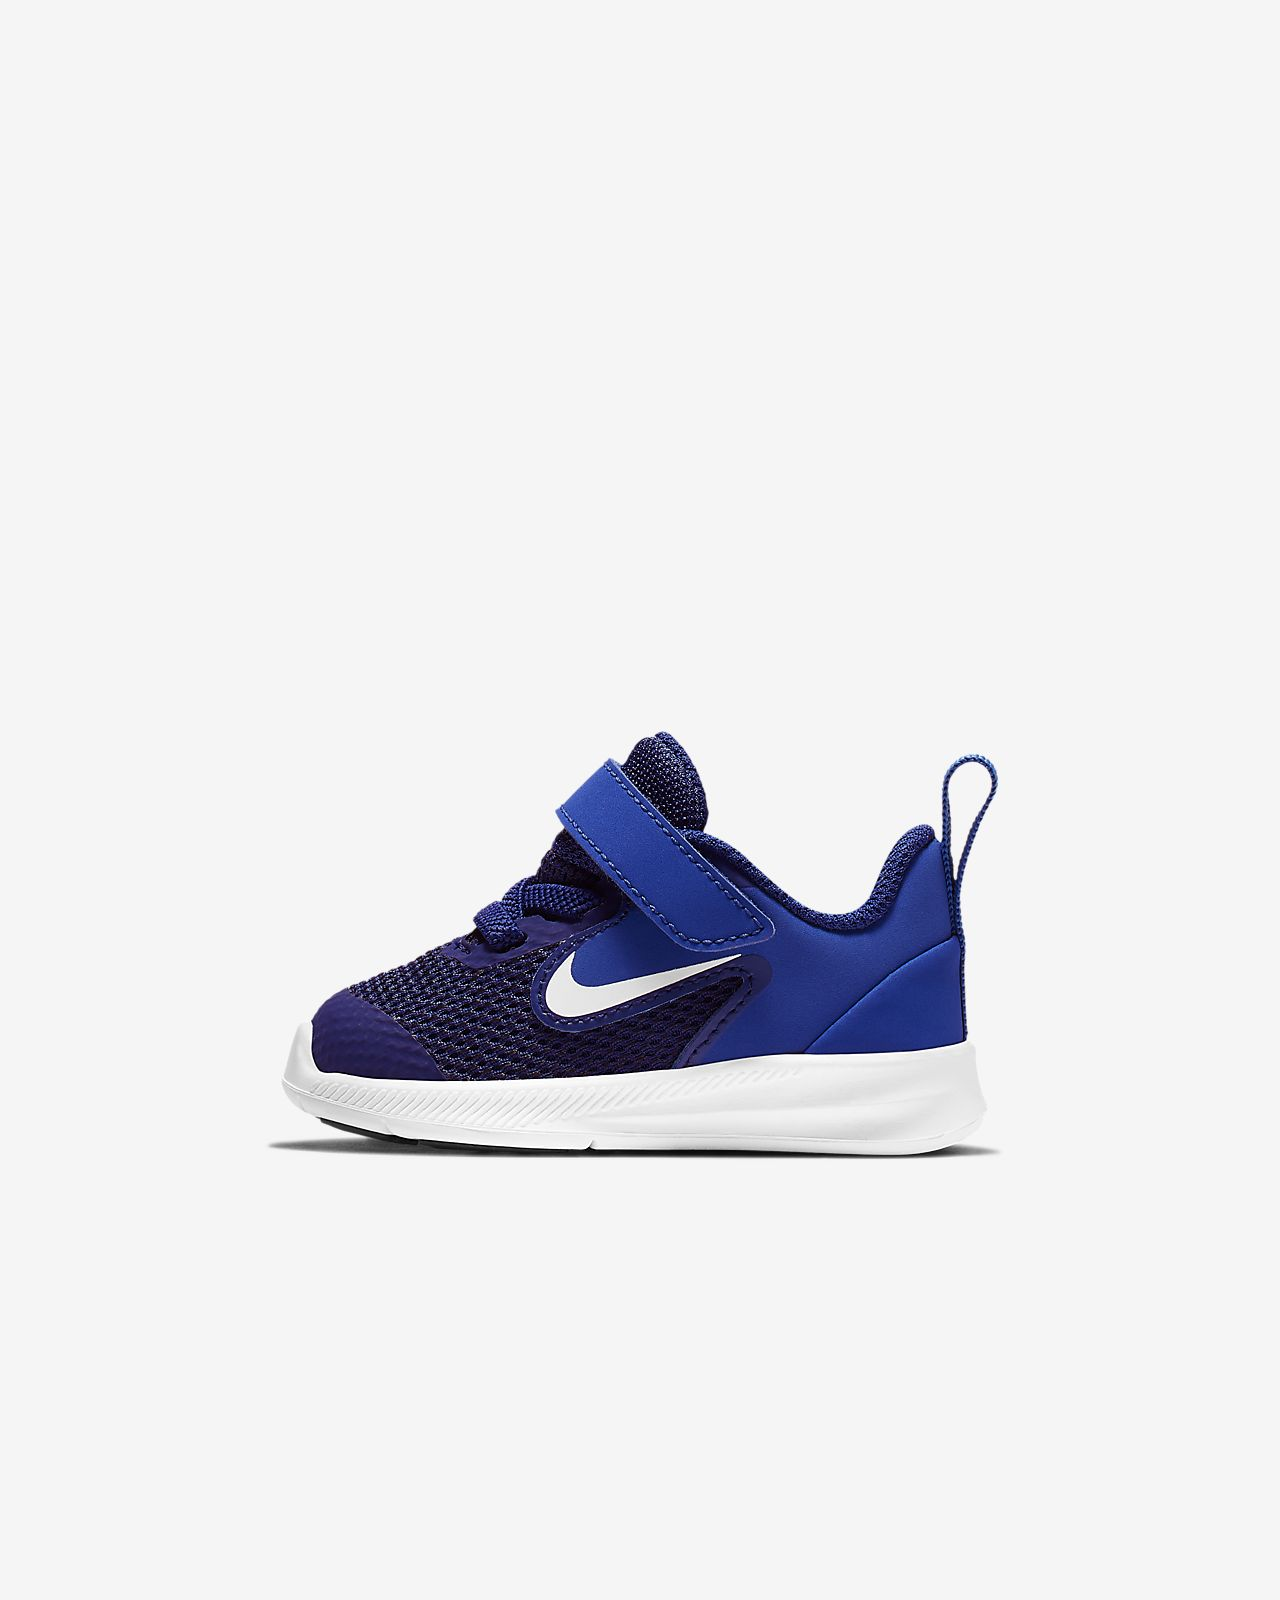 Babies & Toddlers Boys' Shoes. Nike GB